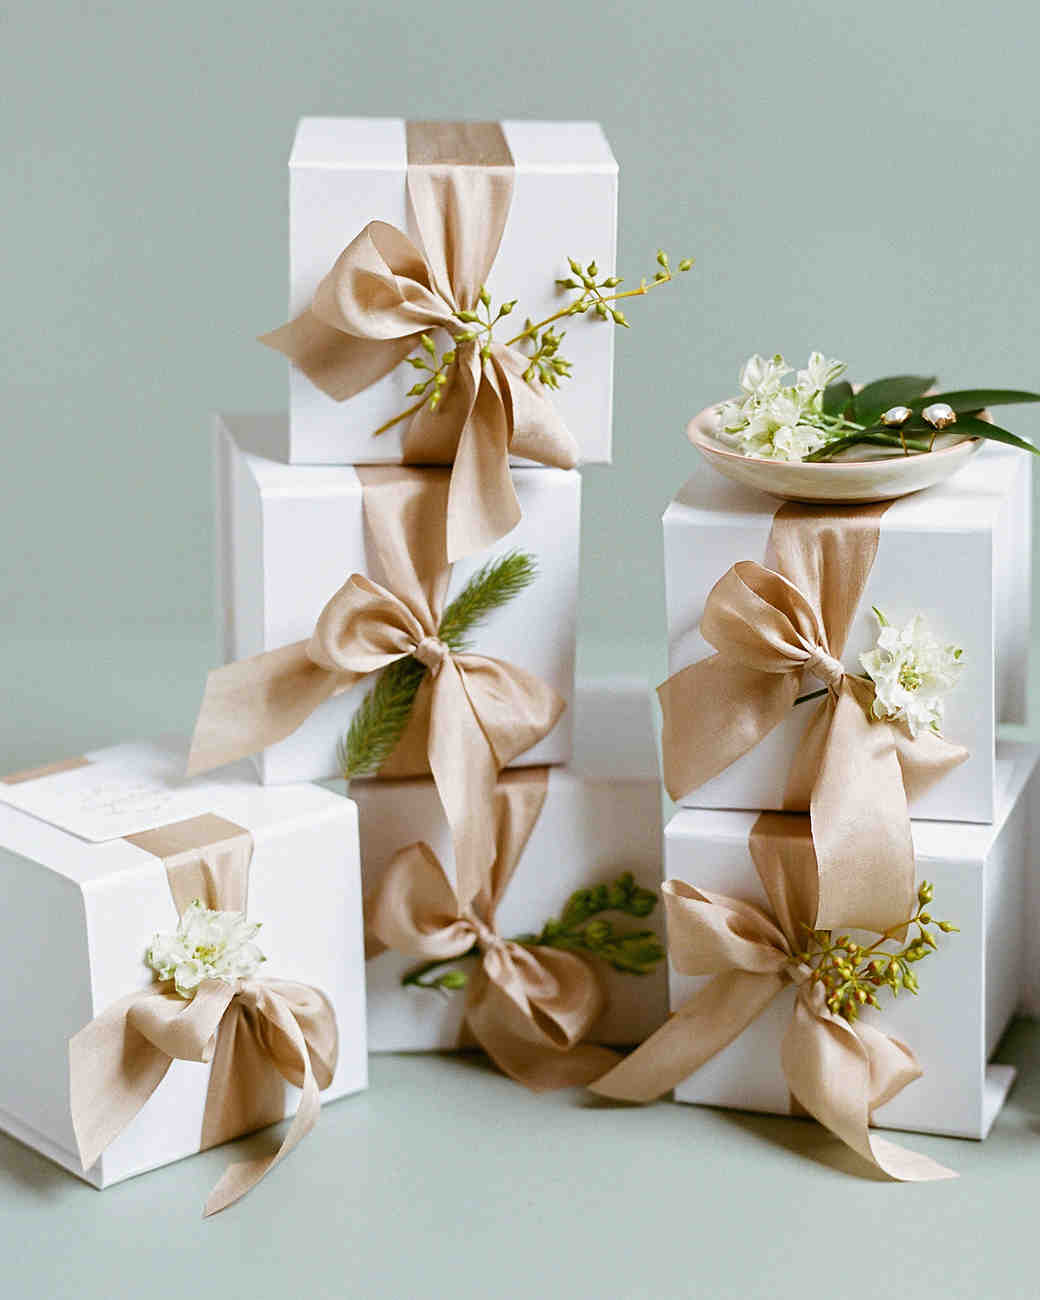 Gift Boxes For Weddings: 34 Festive Fall Wedding Favor Ideas